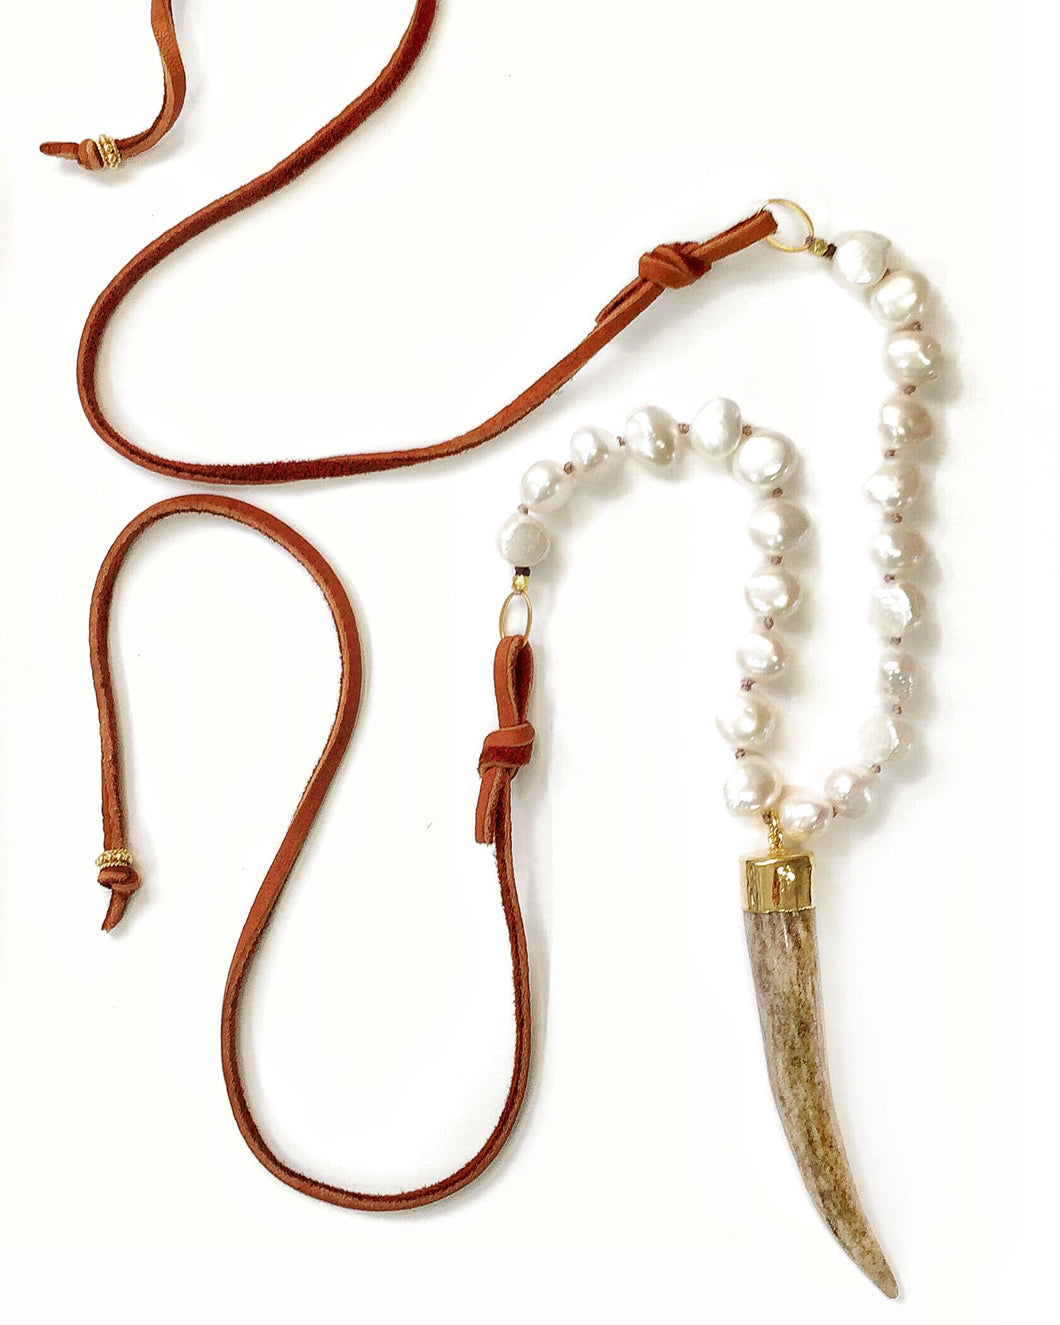 Antler, Pearl, & Suede Necklace